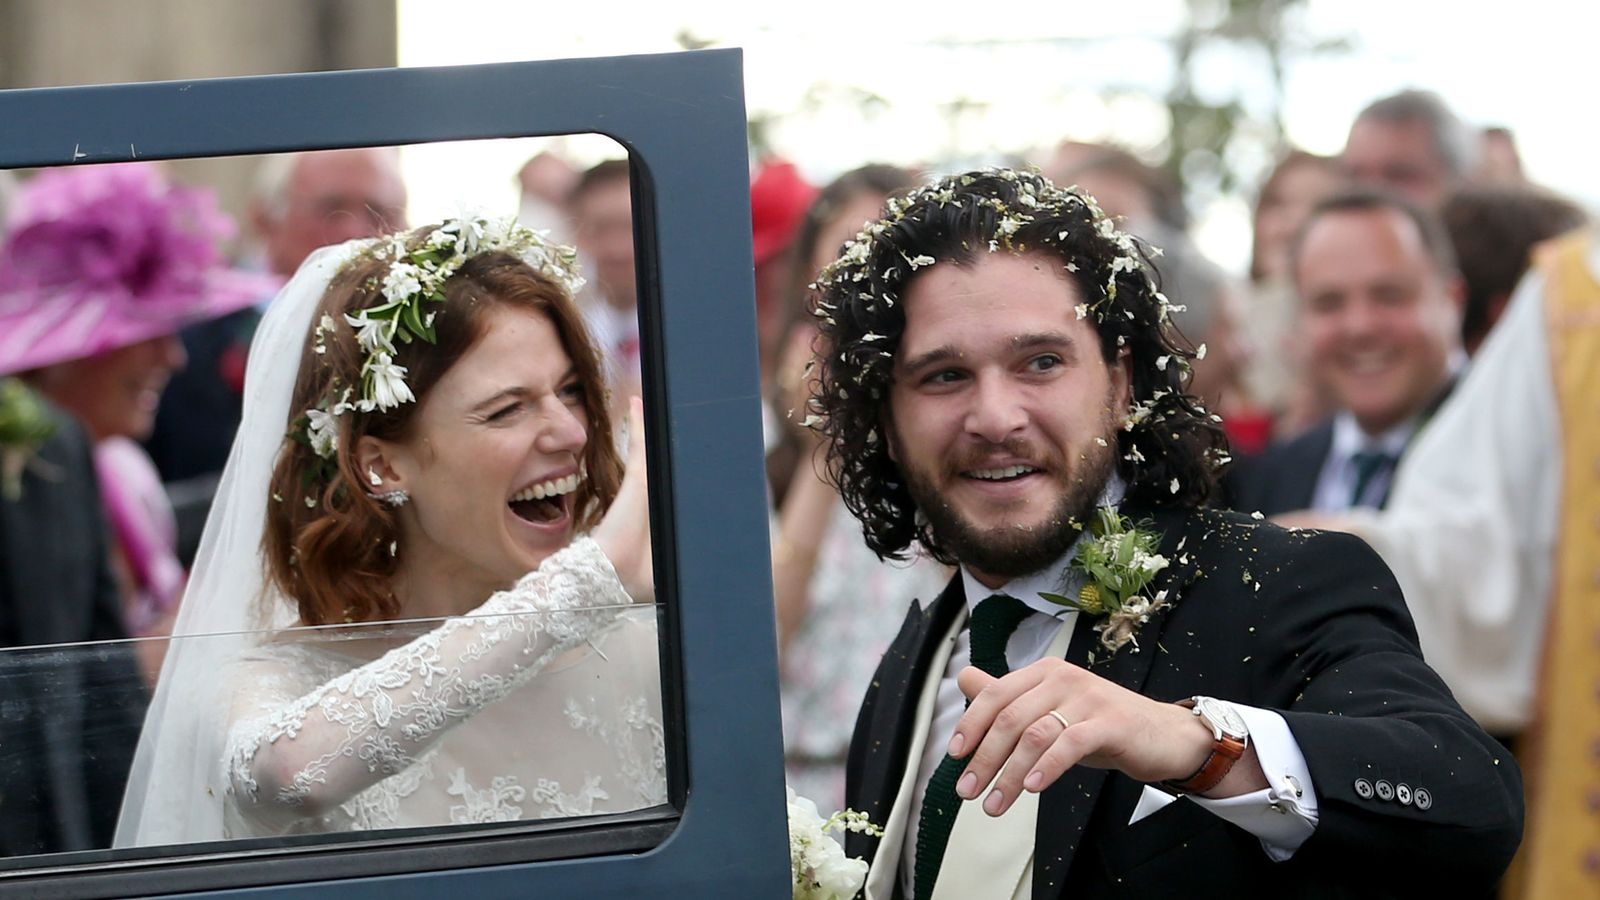 Game Of Thrones stars Kit Harington and Rose Leslie marry at family castle